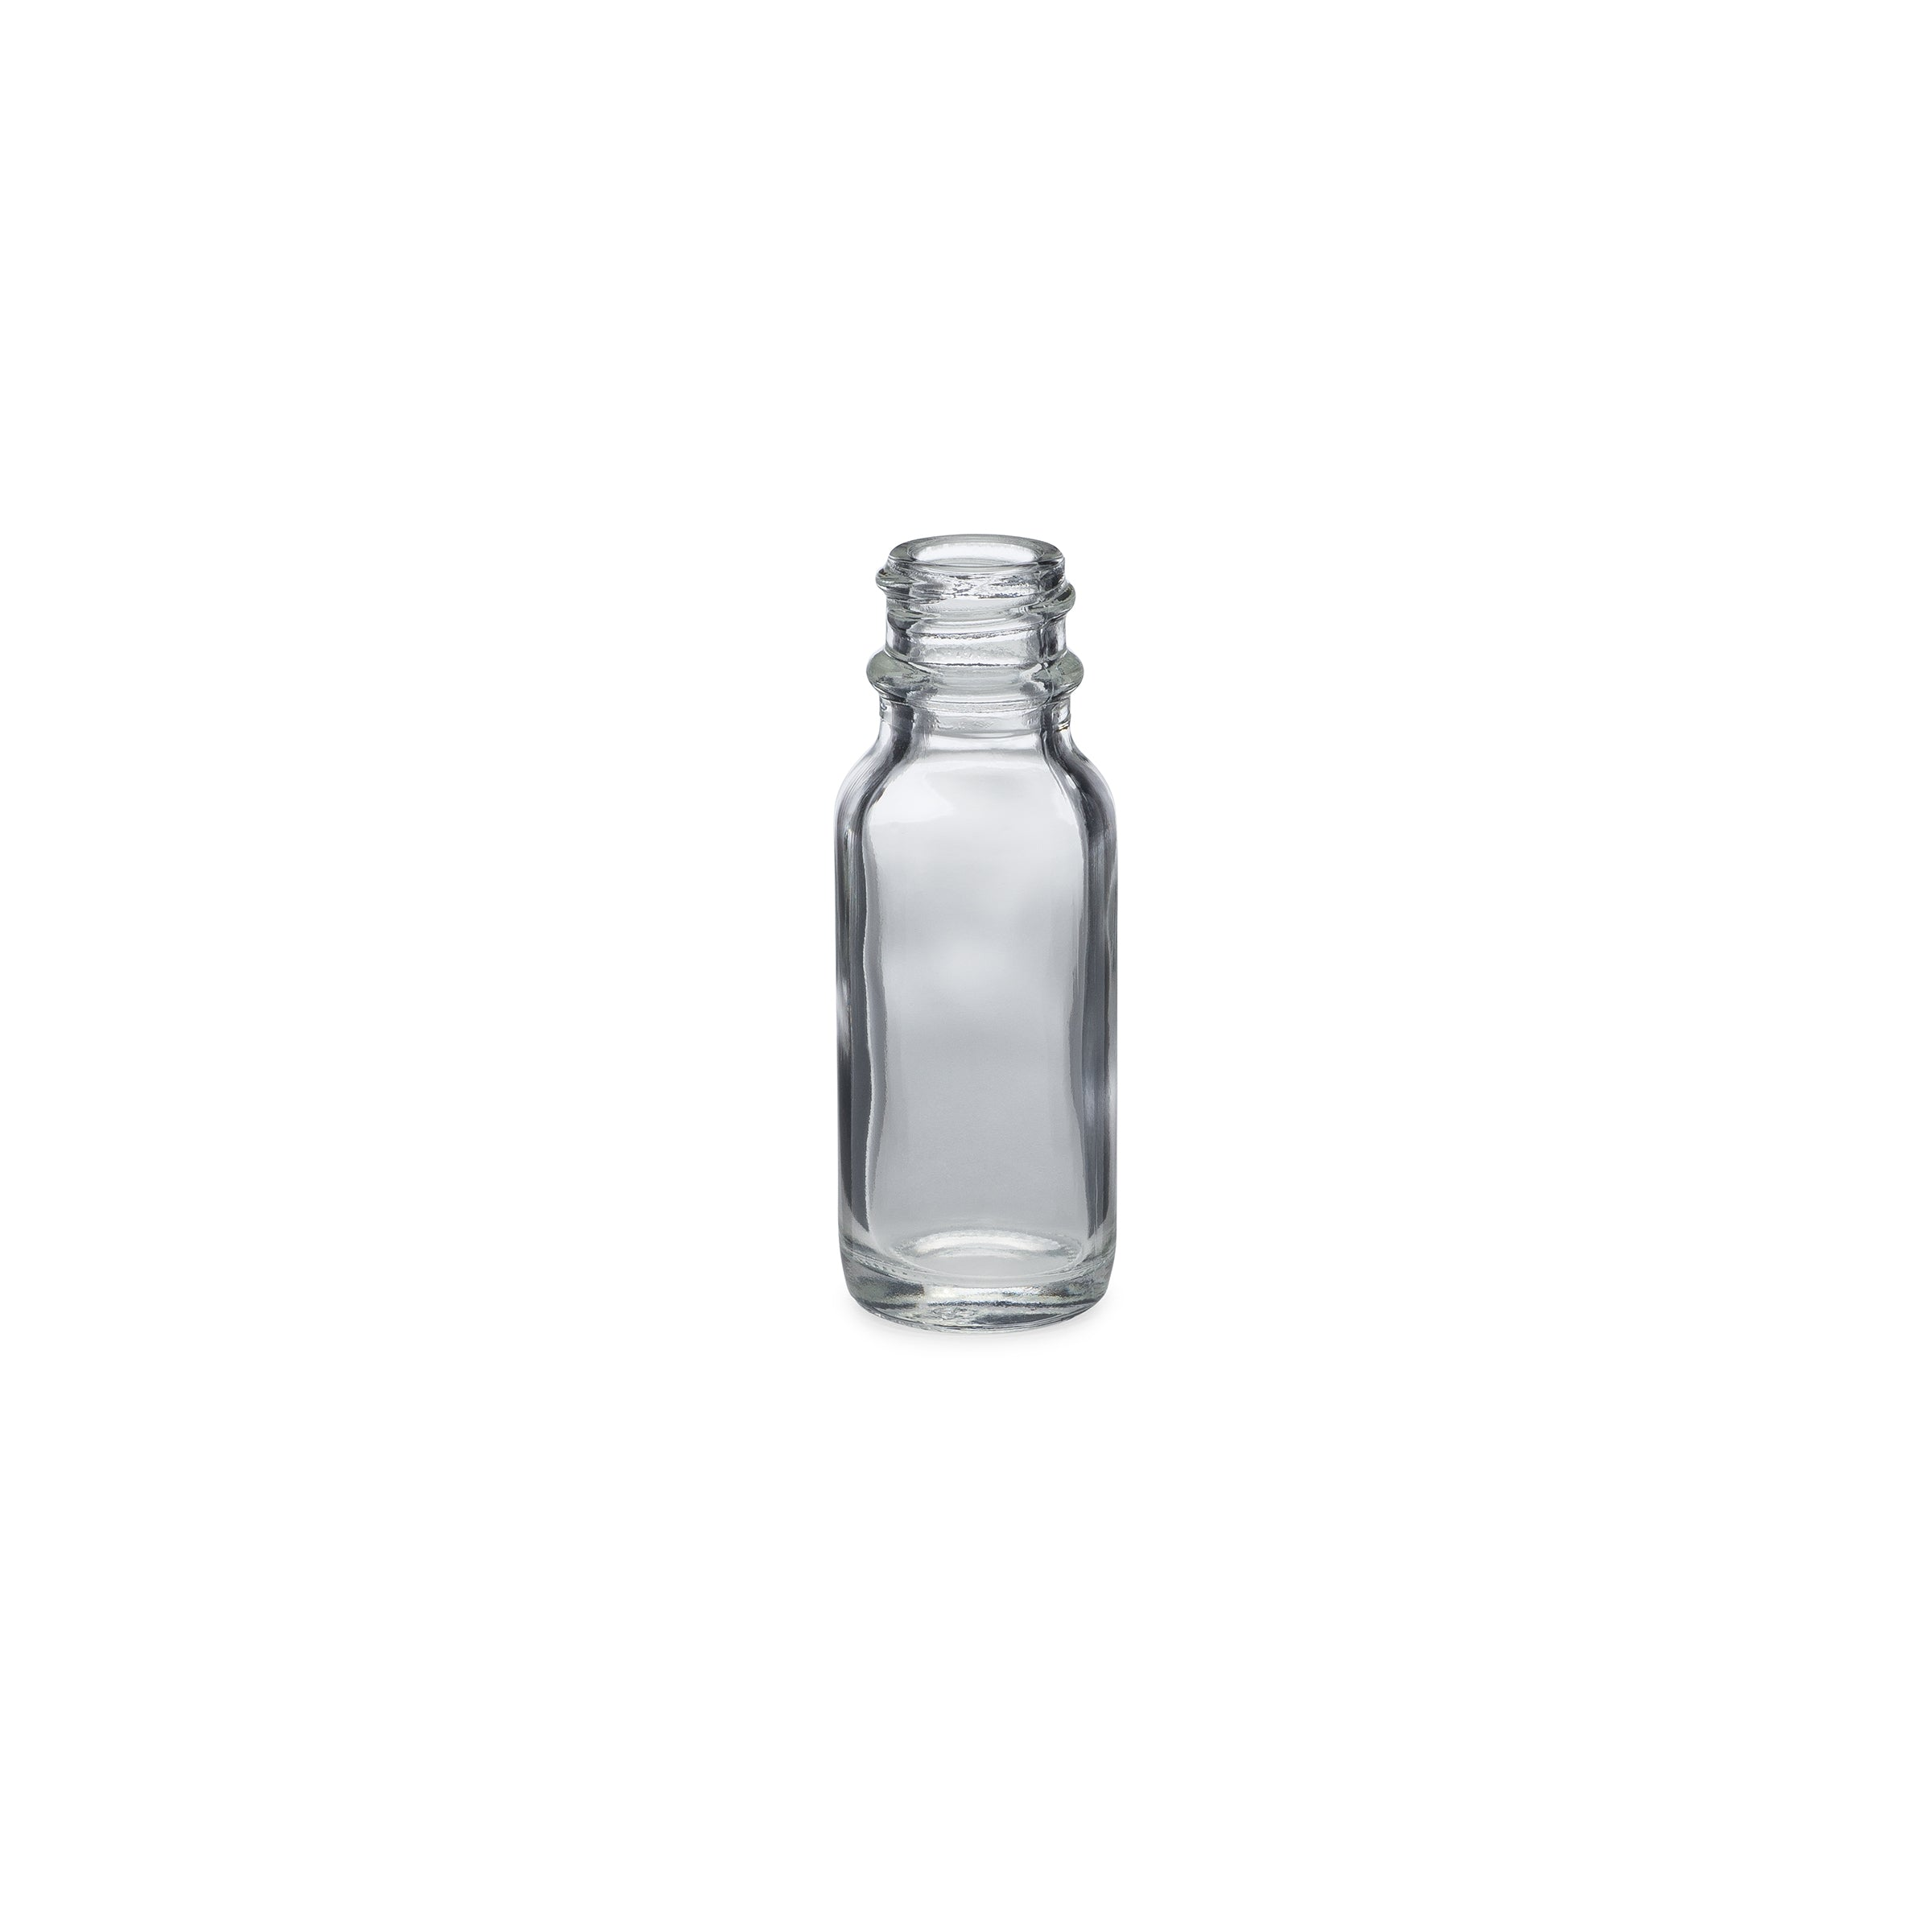 0.5oz/15ml Flint Boston Round Bottle